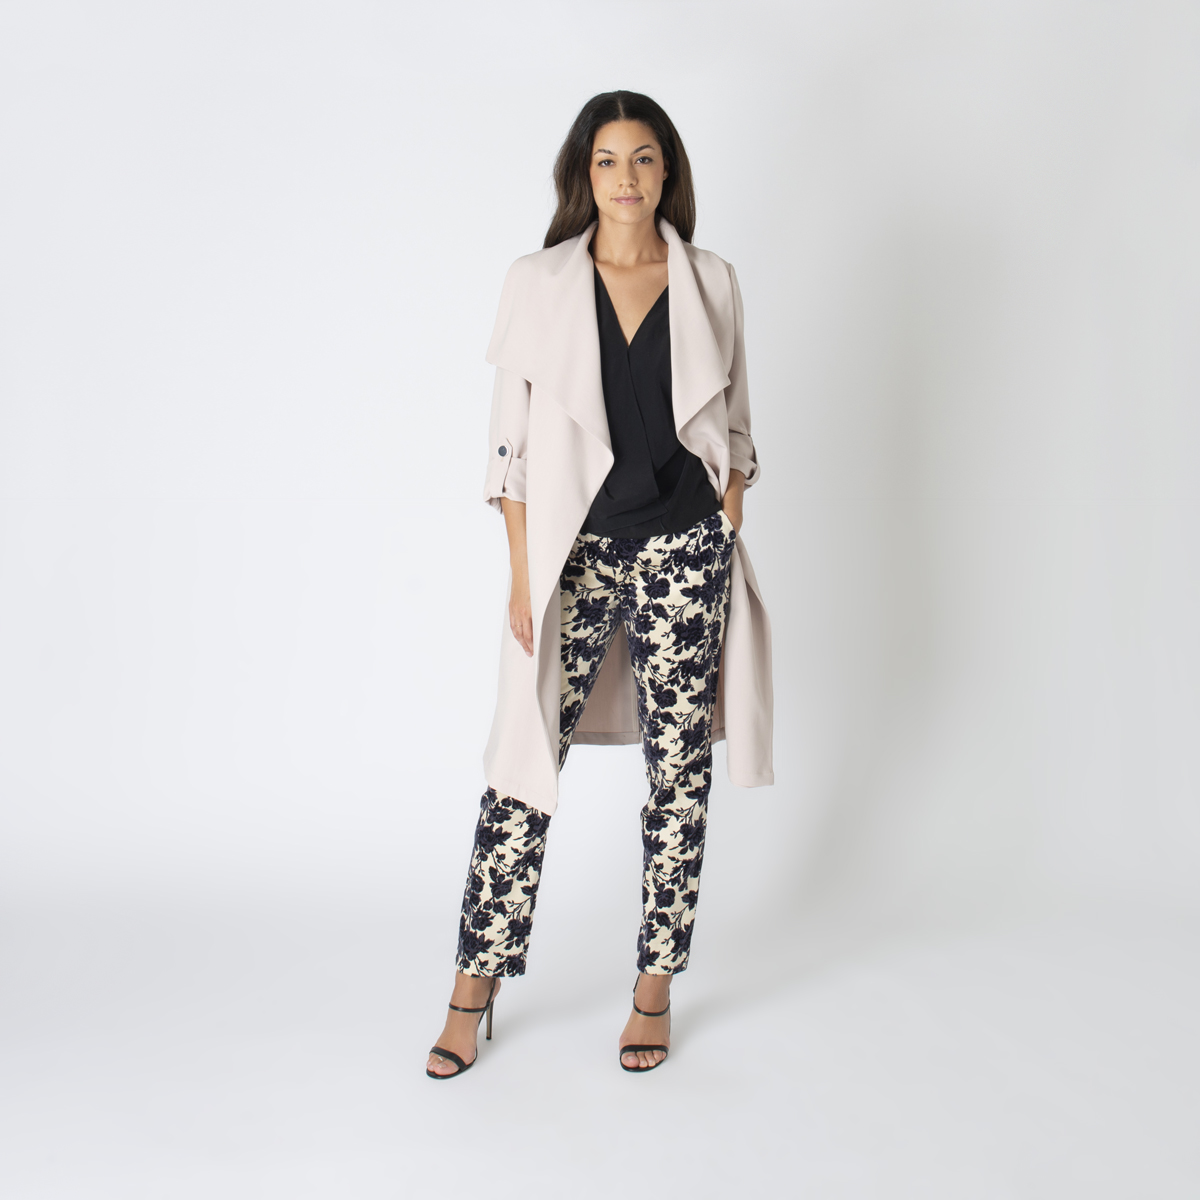 Soia & Kyo 'Ornella' Belted Jacket – New With Tags